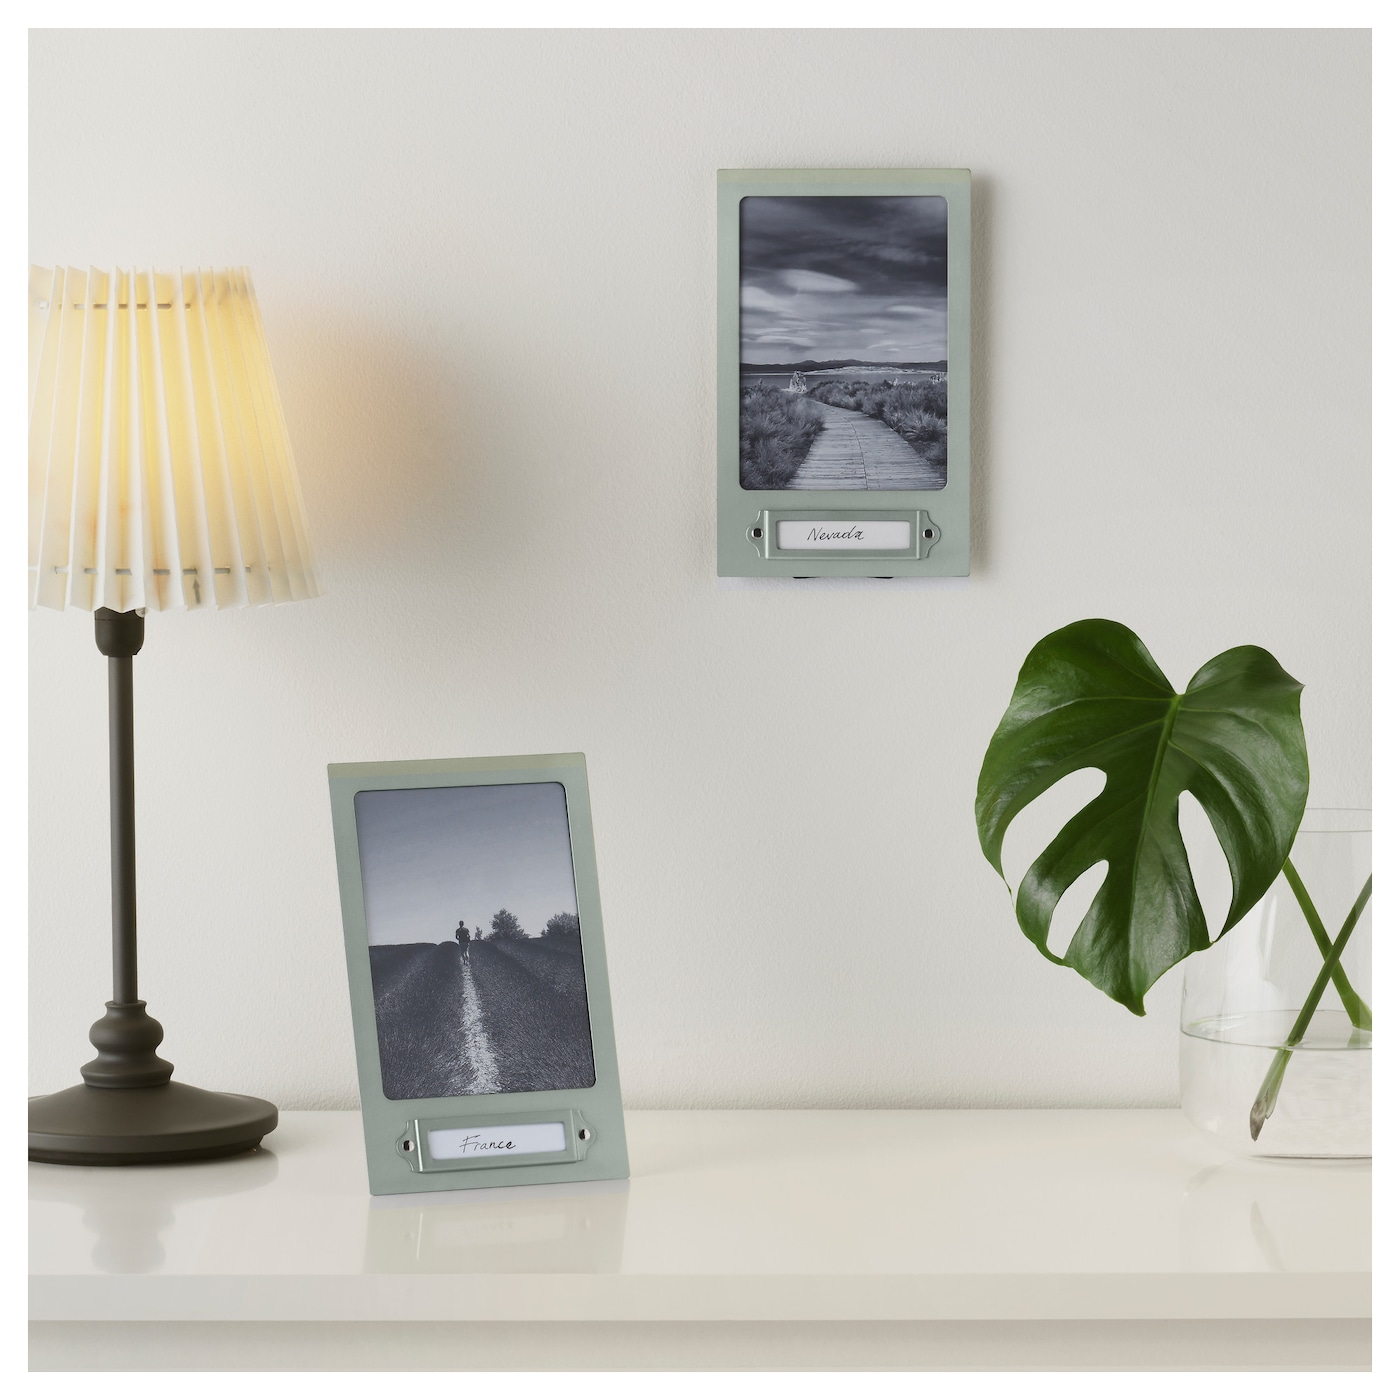 IKEA HYLTEBRUK frame Can be used hanging or standing to fit in the space available.